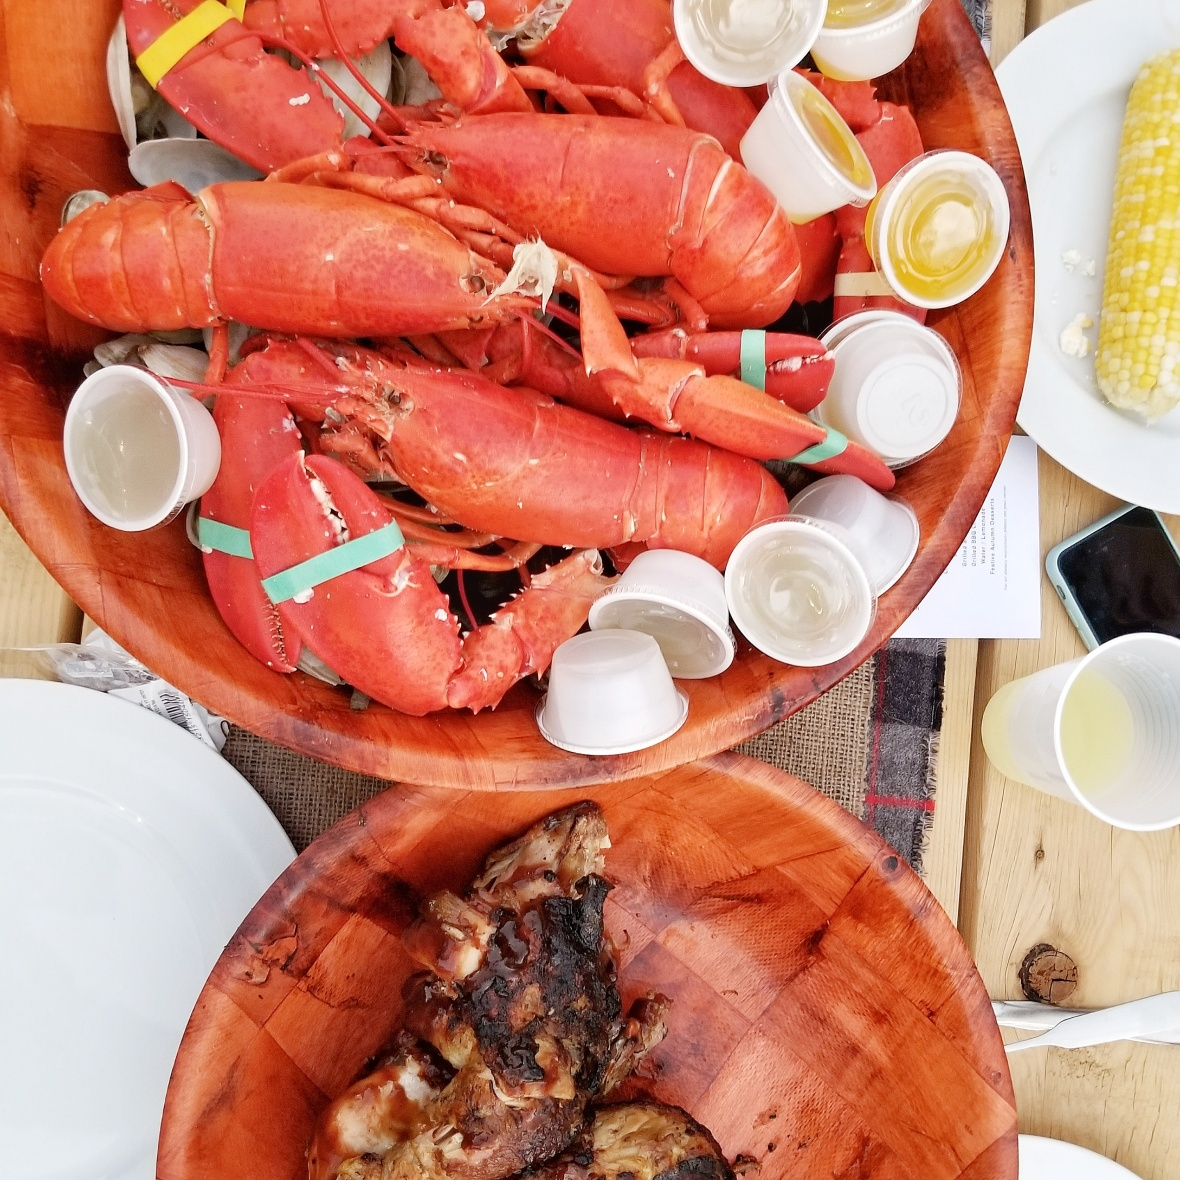 Maine Lobster, mussels, oysters, chicken and steak